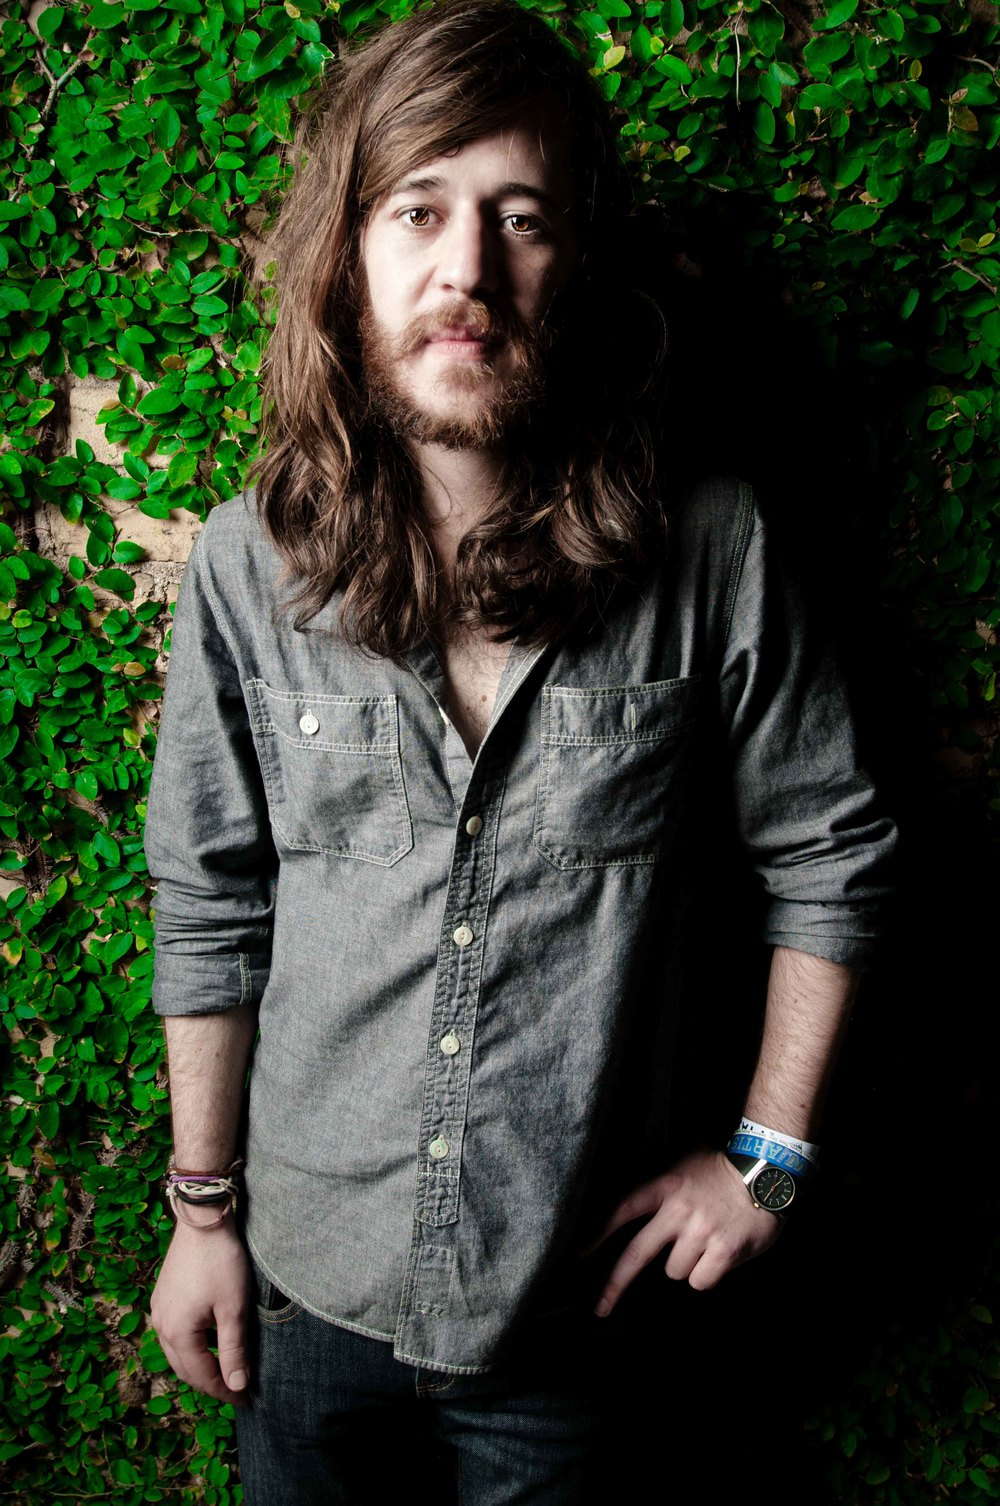 JESSE TABISH (OTHER LIVES)